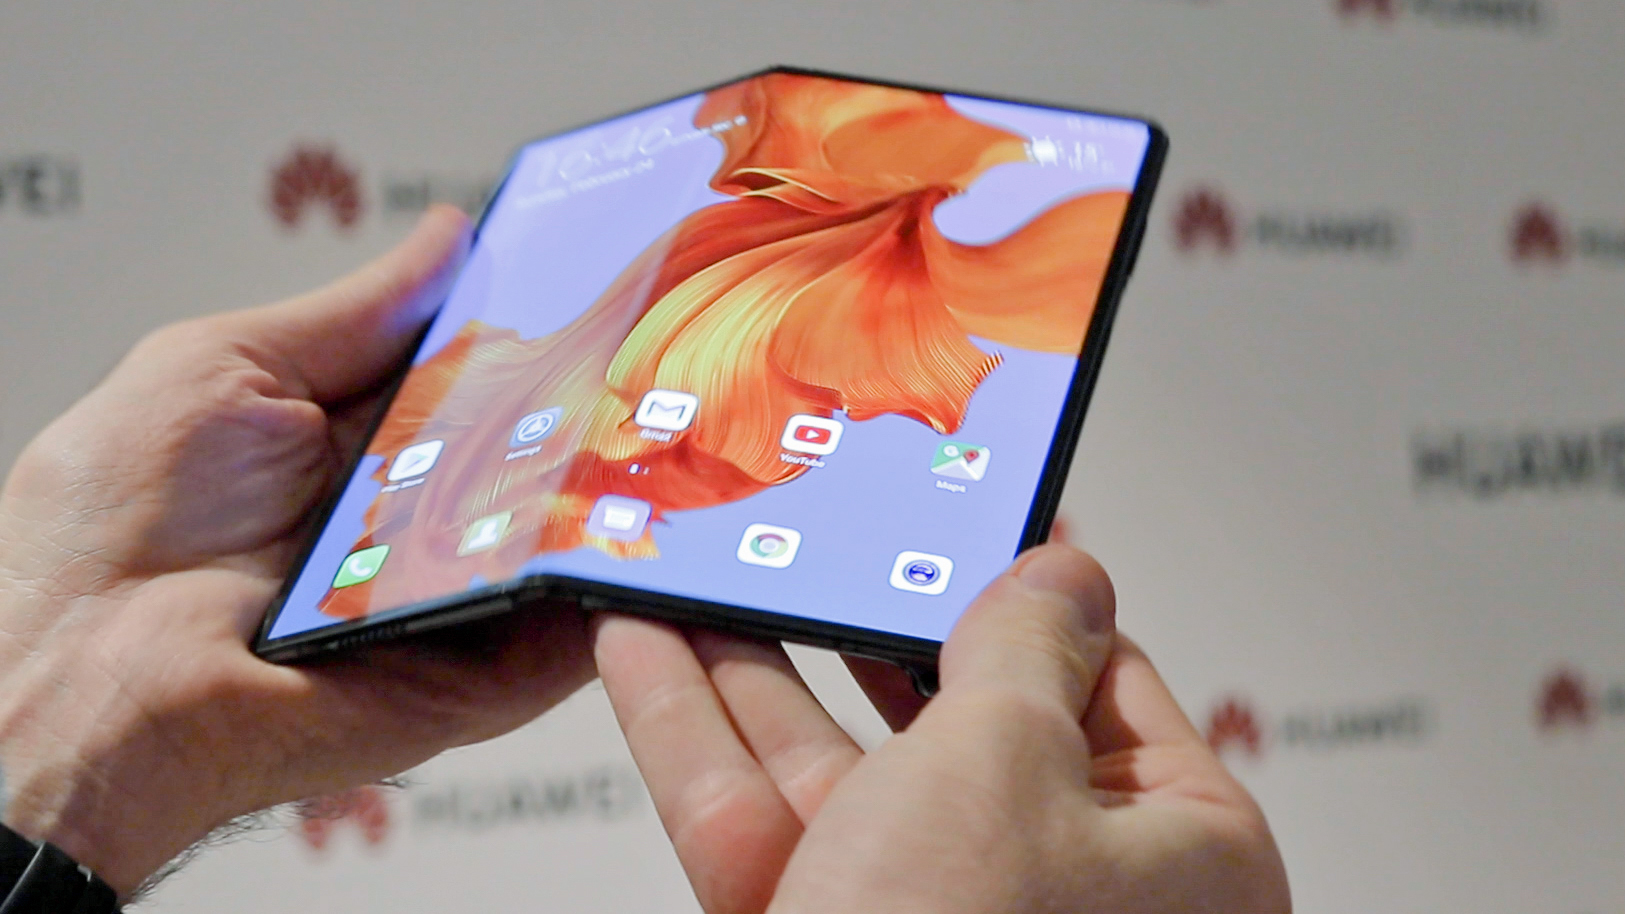 Foldable phones: all the rumored and confirmed foldable handsets